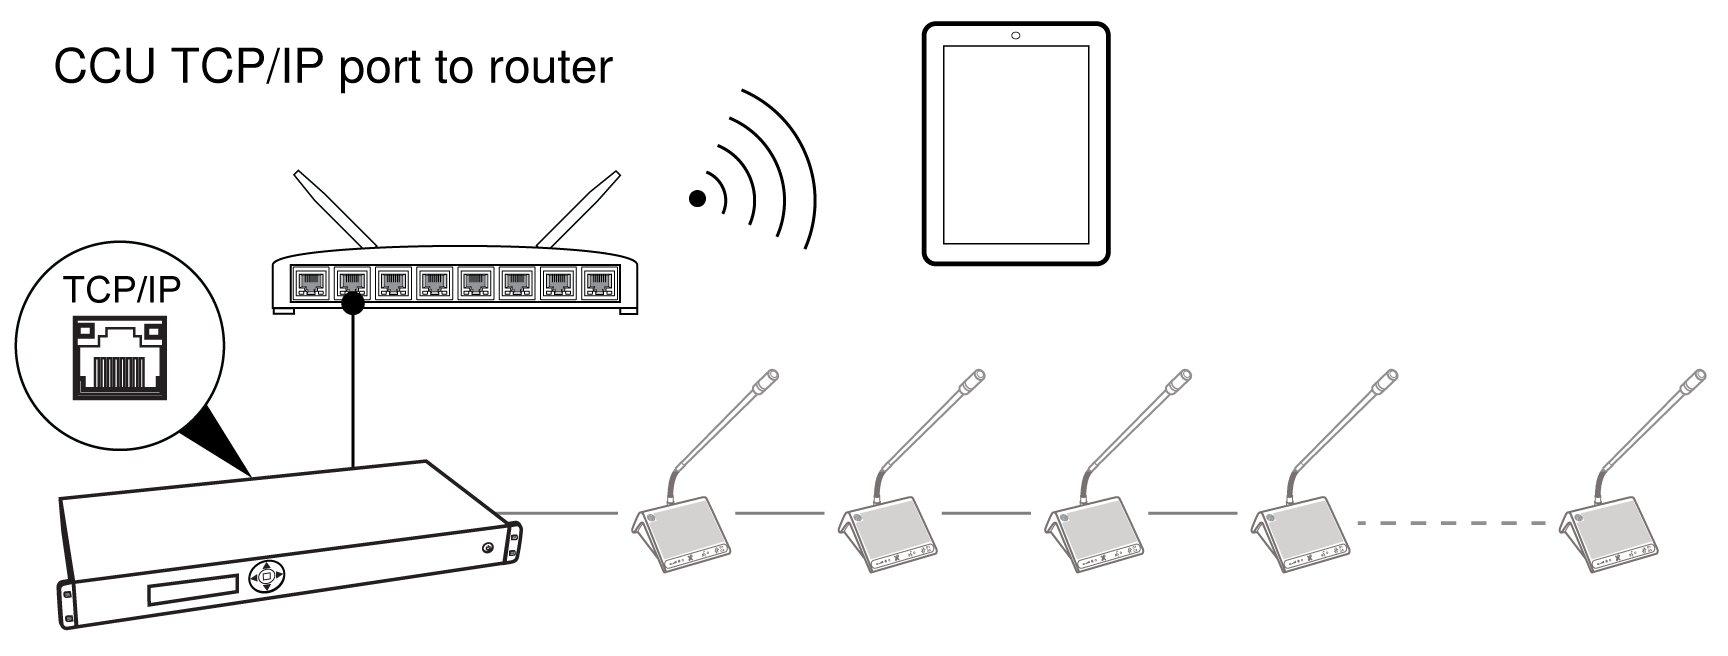 Shure Publications User Guides Dds 5900 Puter System Diagram In Addition On Hardware Block Of Toilet Tablet Or Laptop For Wireless Control